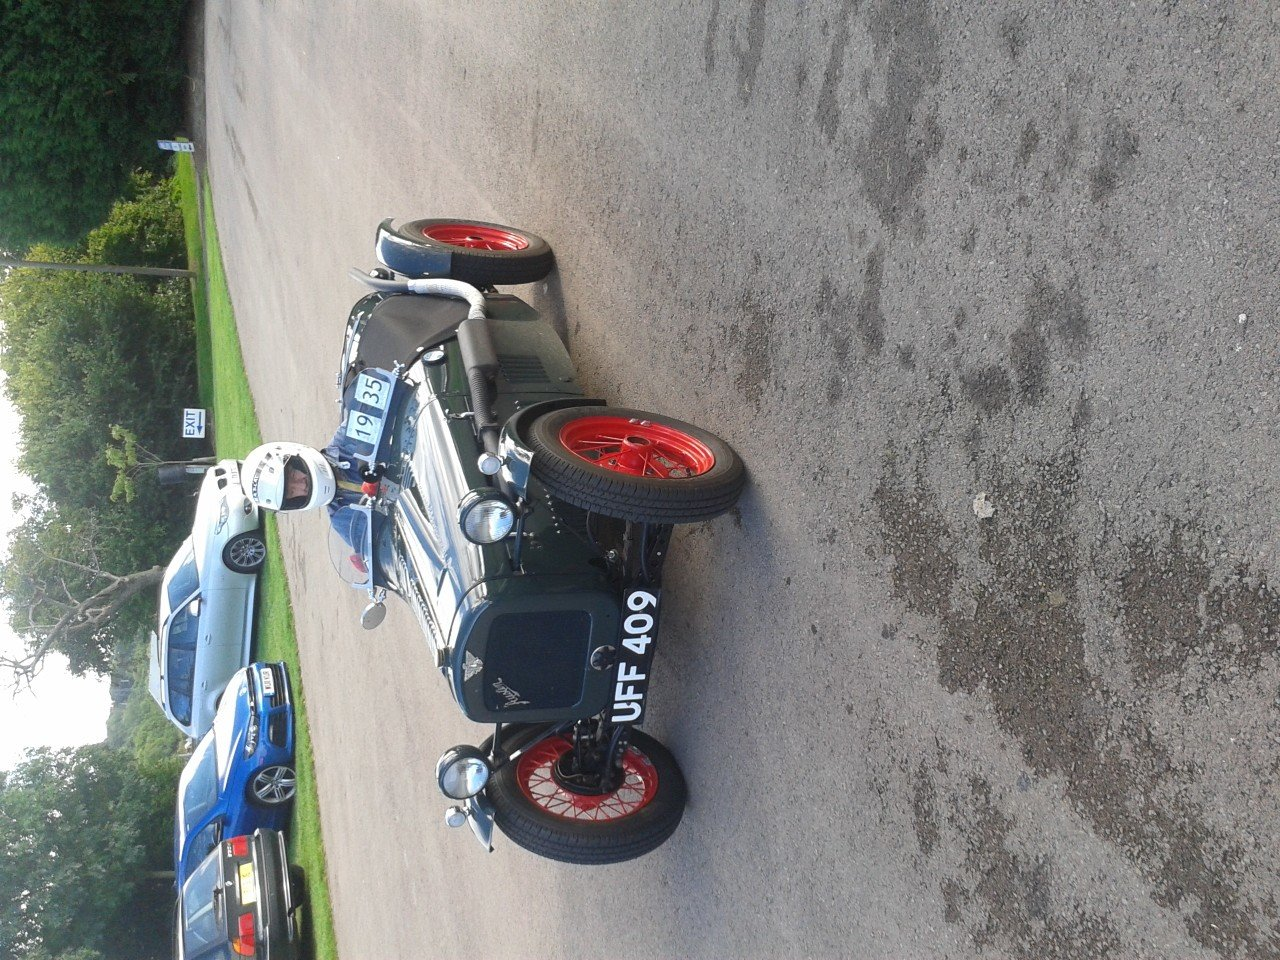 1937 Austiven Special sprint hill climb road car For Sale (picture 3 of 6)